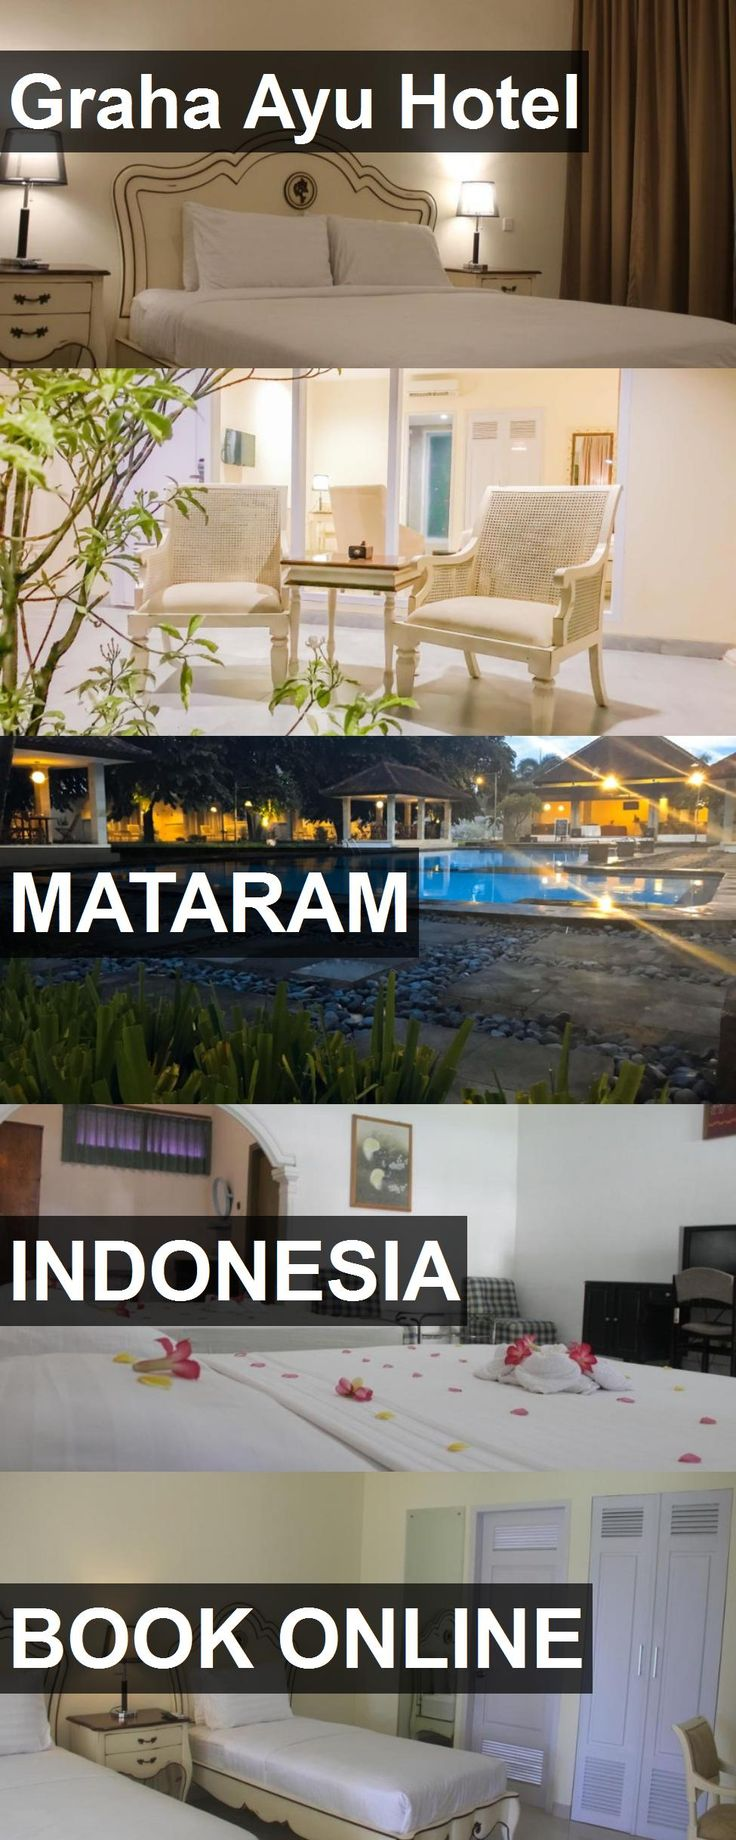 Graha Ayu Hotel in Mataram, Indonesia. For more information, photos, reviews and best prices please follow the link. #Indonesia #Mataram #travel #vacation #hotel